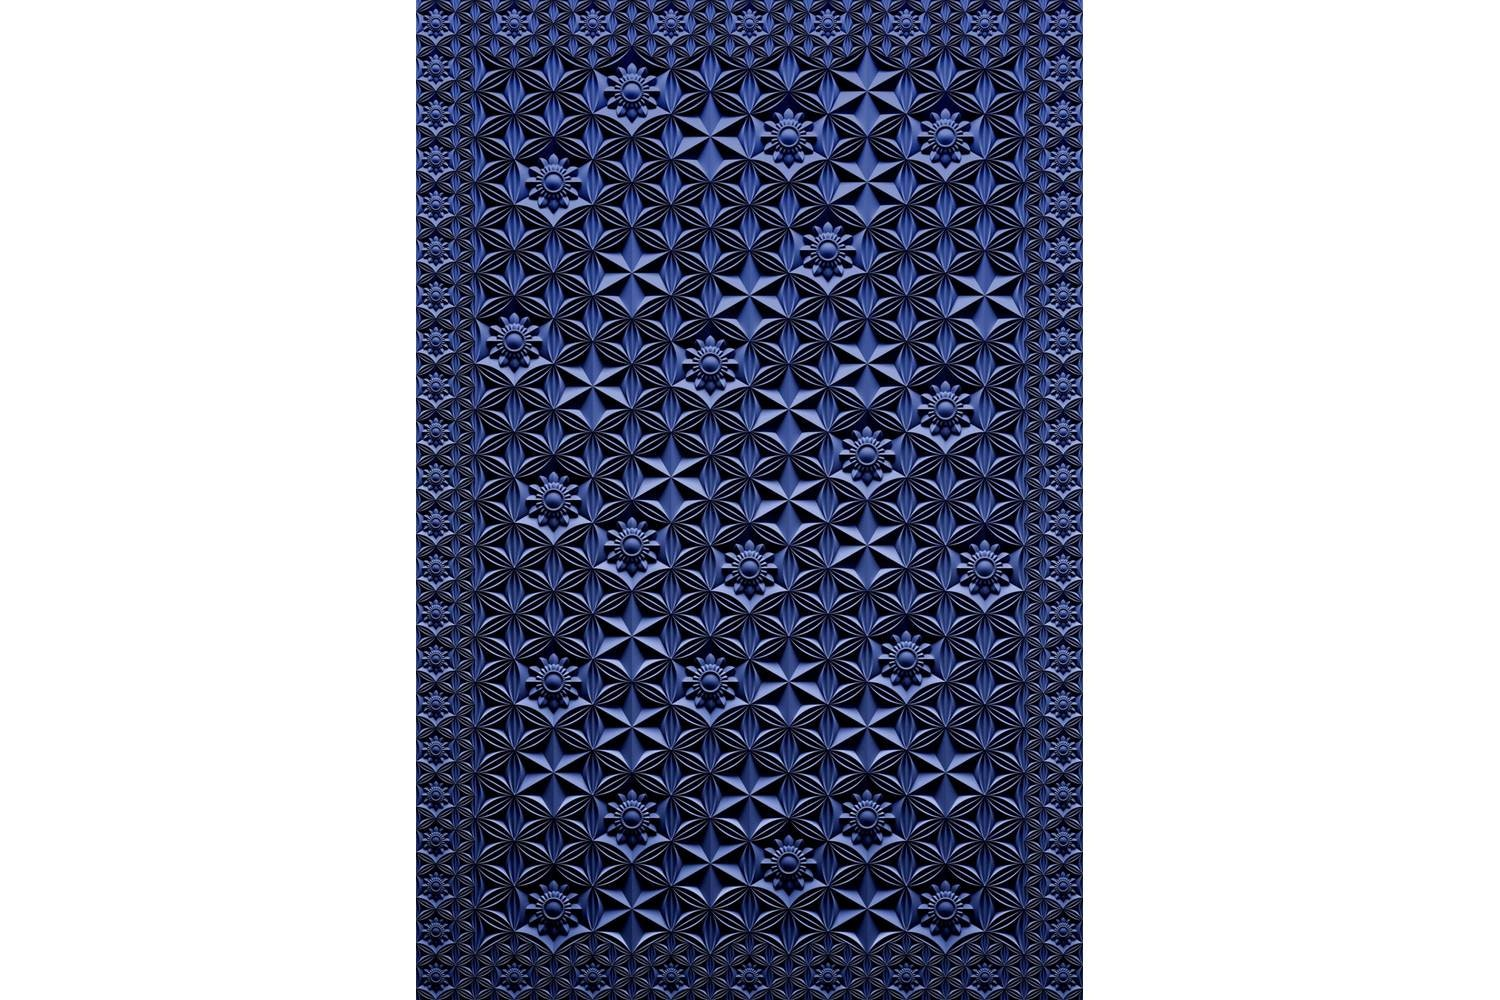 Crystal Rose Woven Rug by Marcel Wanders for Moooi Carpets